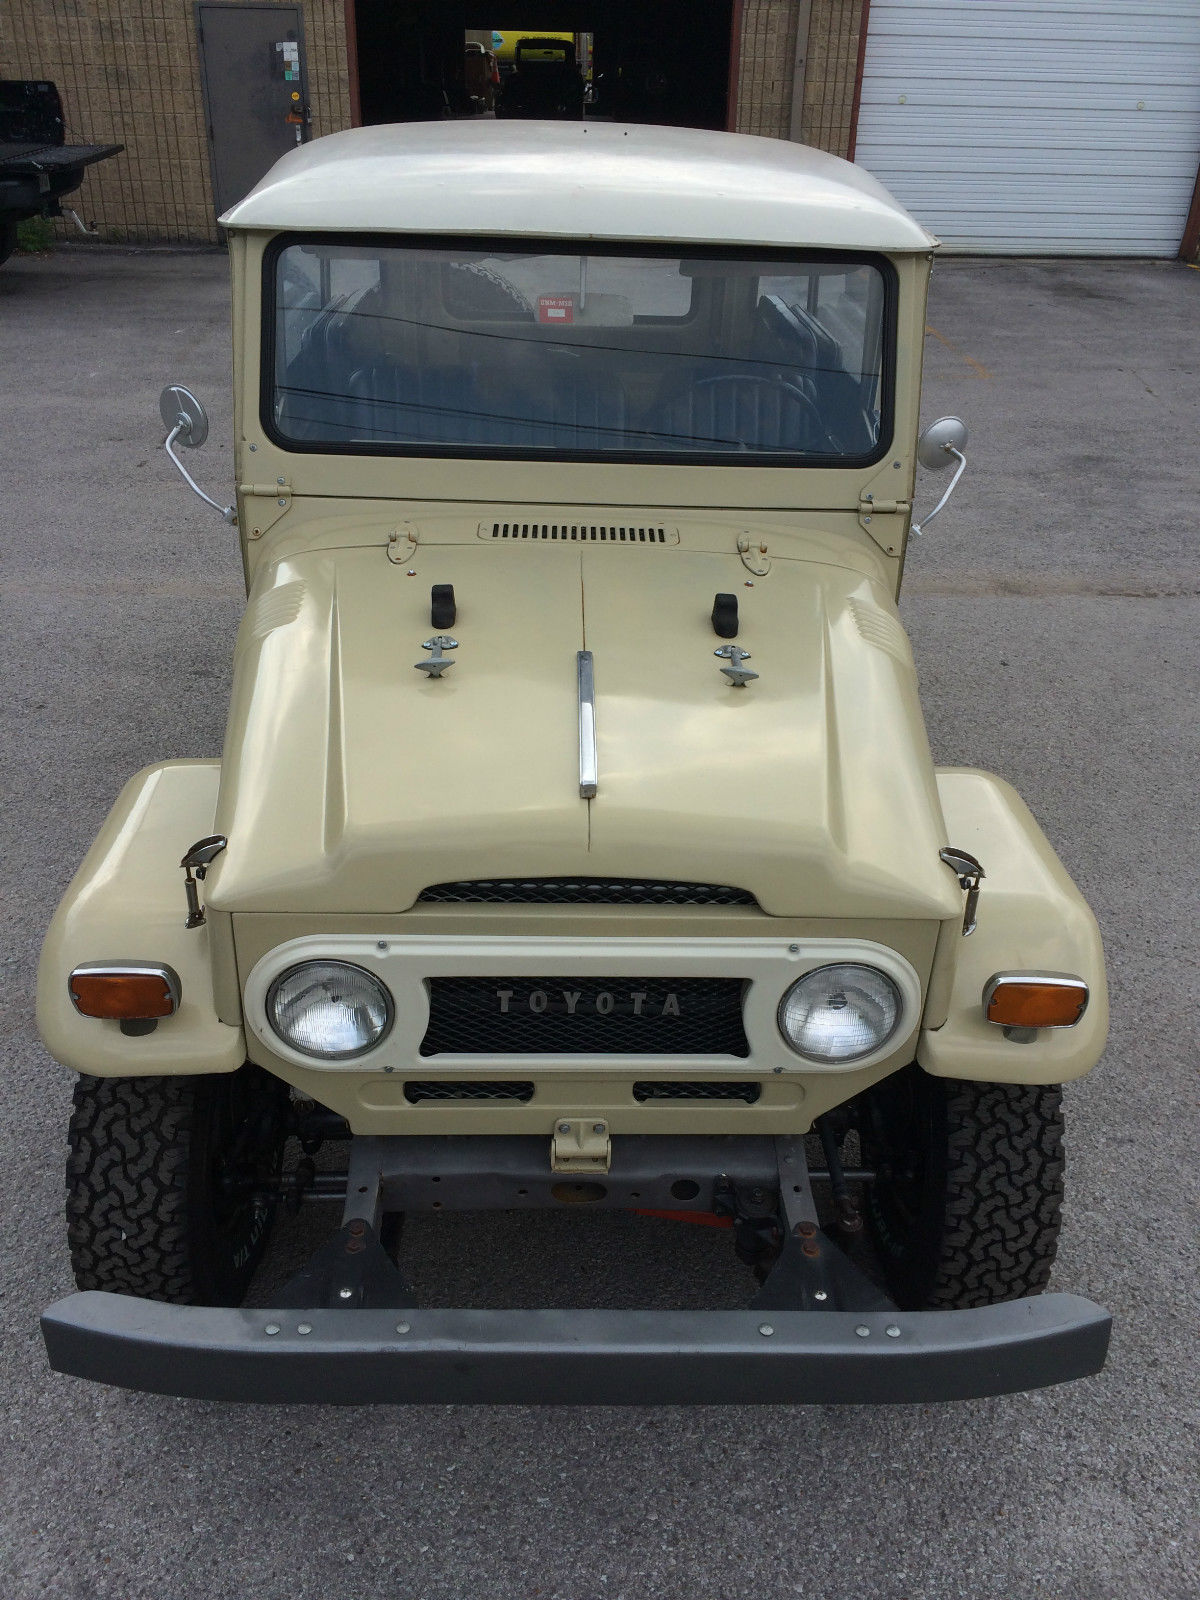 Toyota Fj40 For Sale >> eBay Find: 500-Mile '71 Toyota Land Cruiser - autoevolution